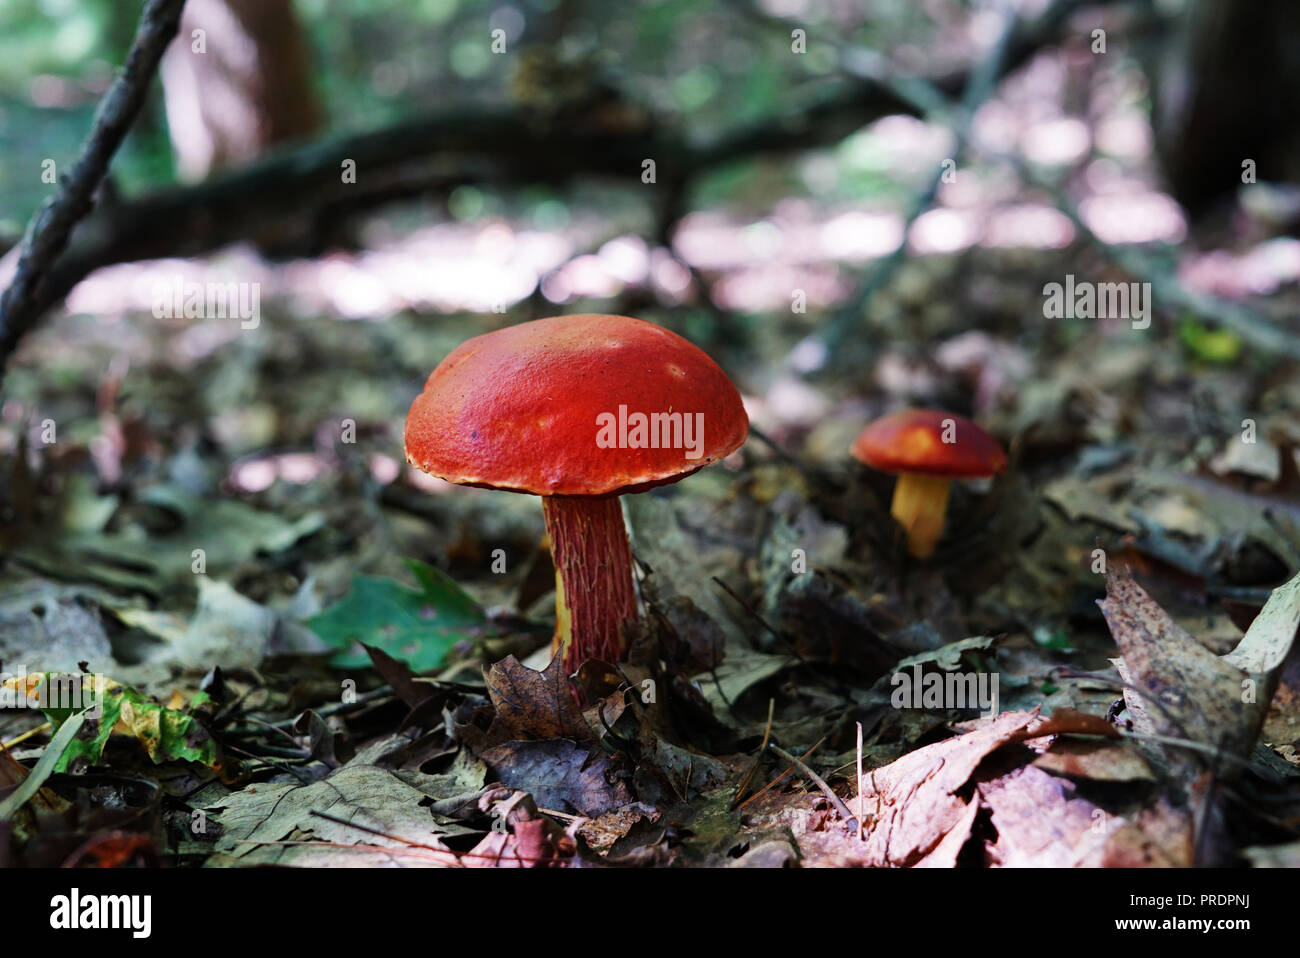 Big beautiful red mushroom close-up on a background of scaffolding and dry foliage. A small fungus is visible on a blurred background. A long large br - Stock Image